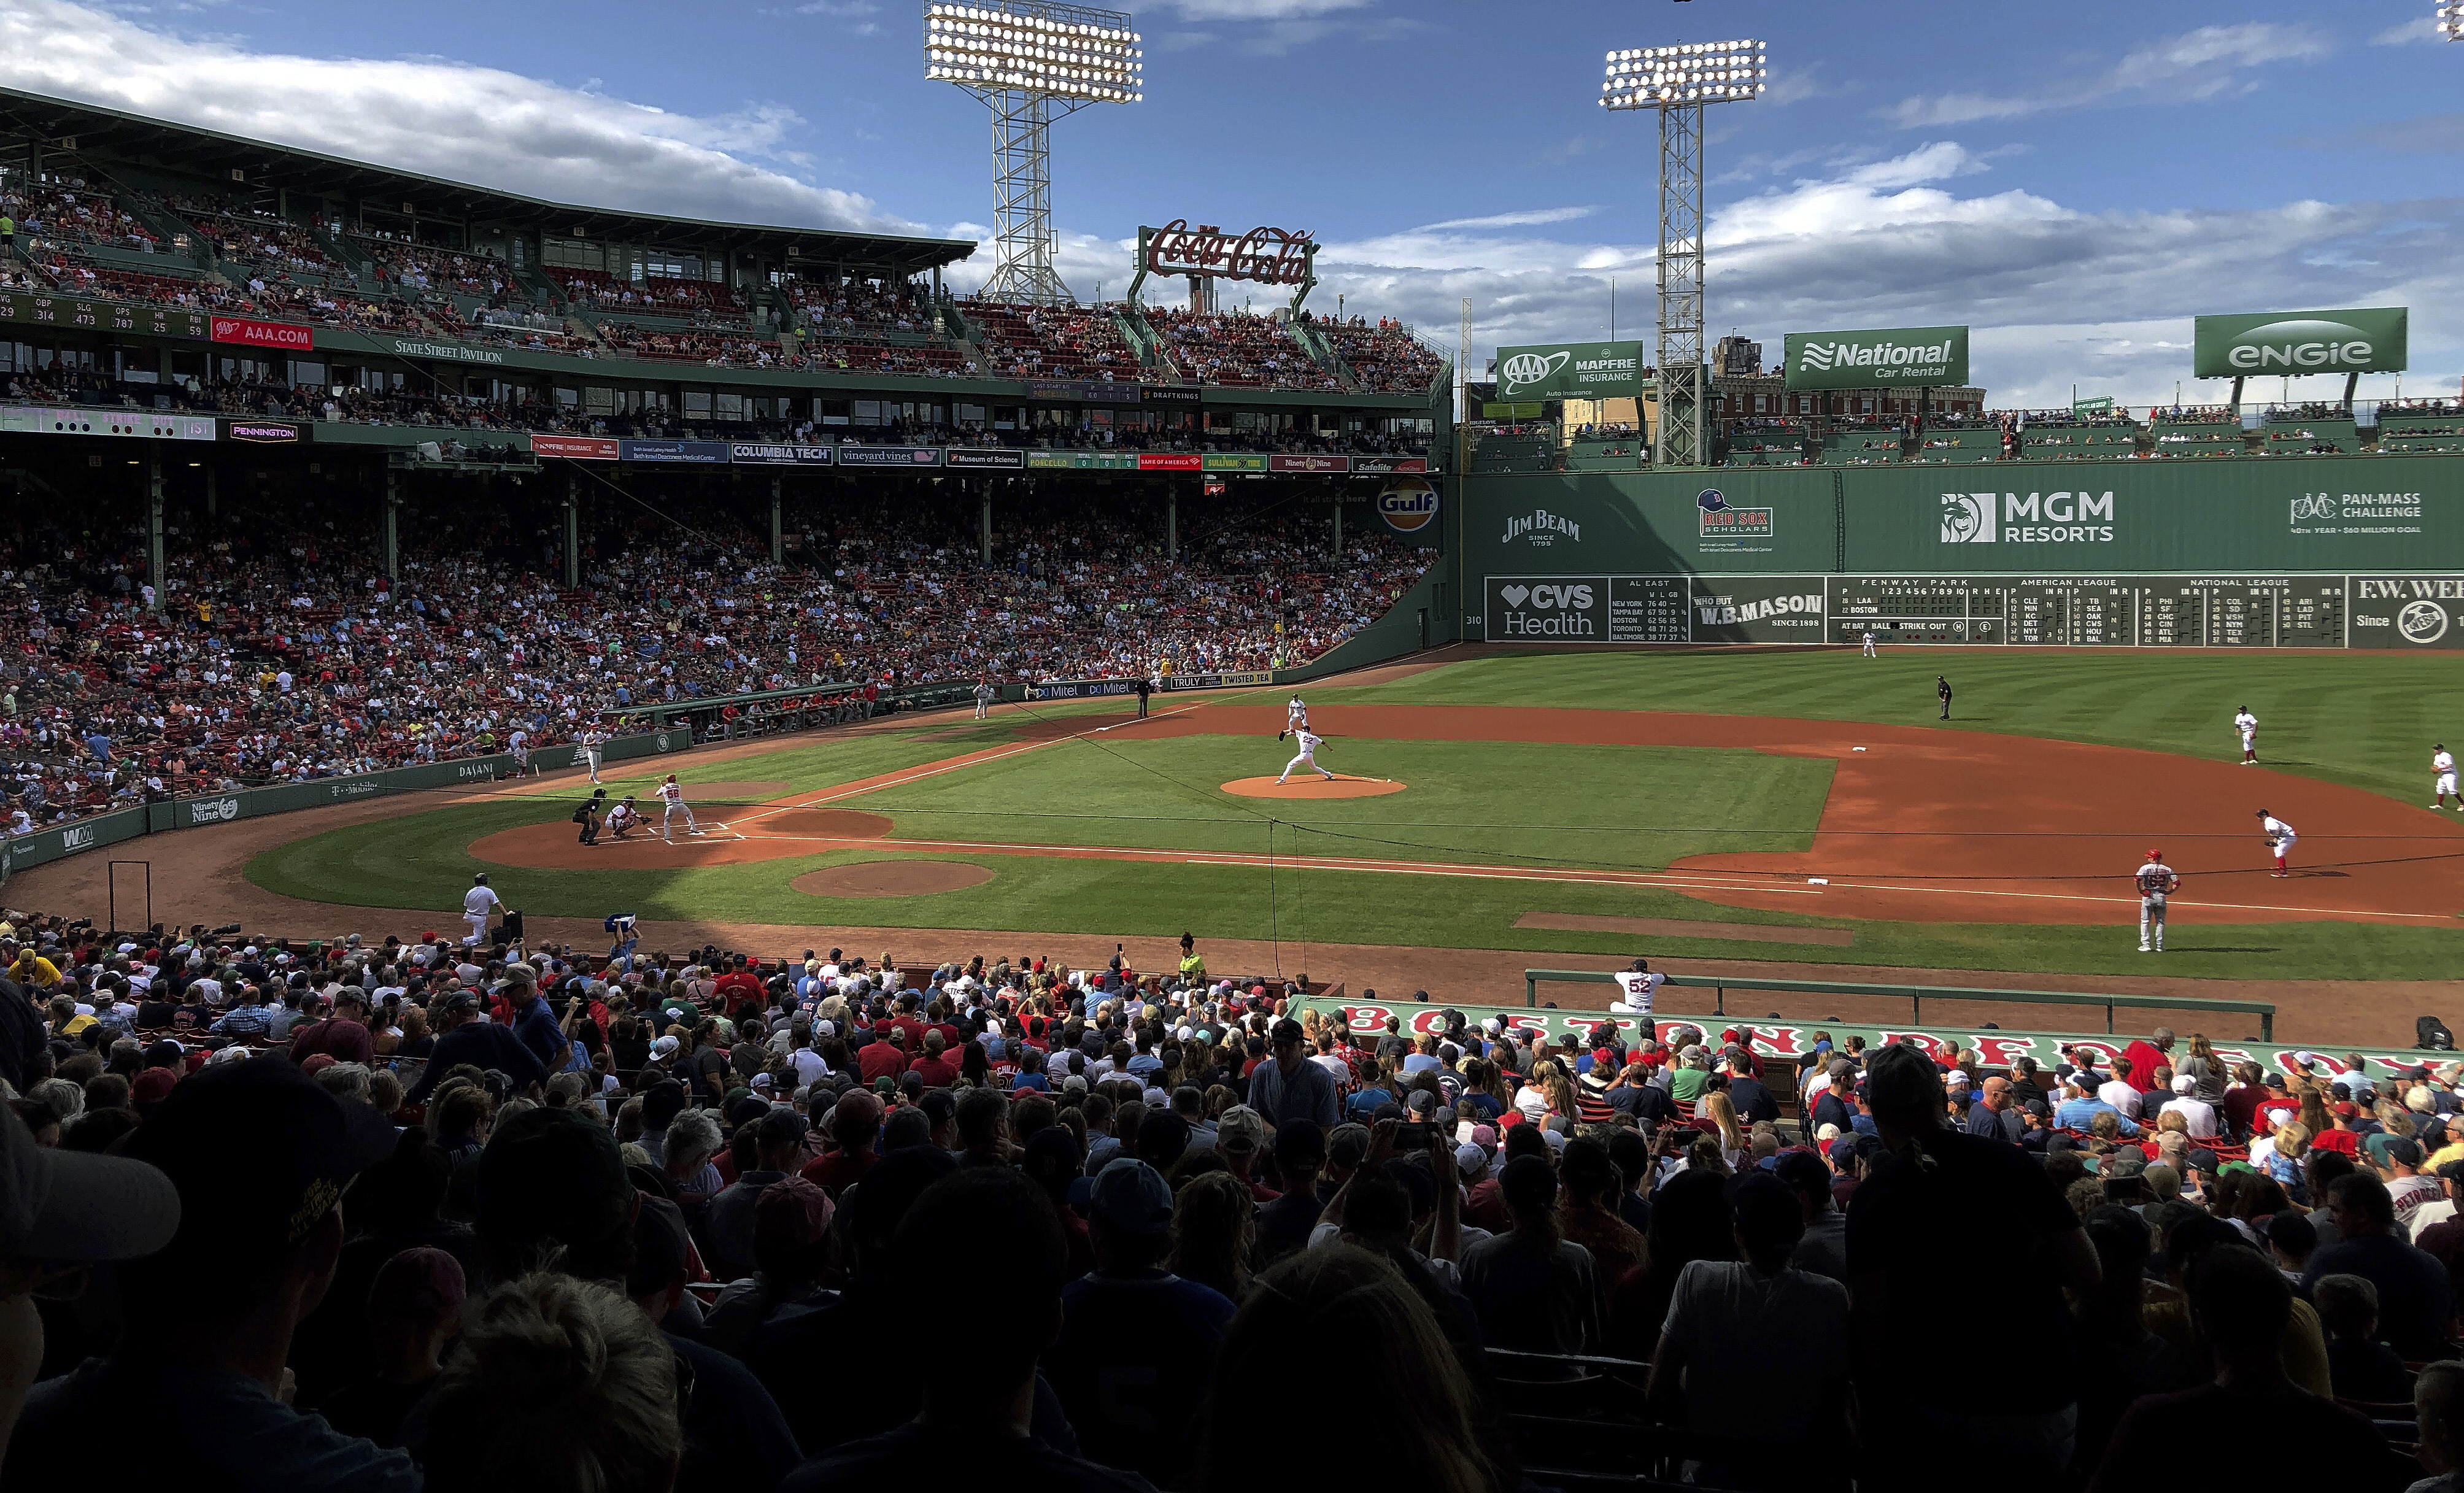 Boston Red Sox to increase ticket prices by an average of 1.7% in 2020